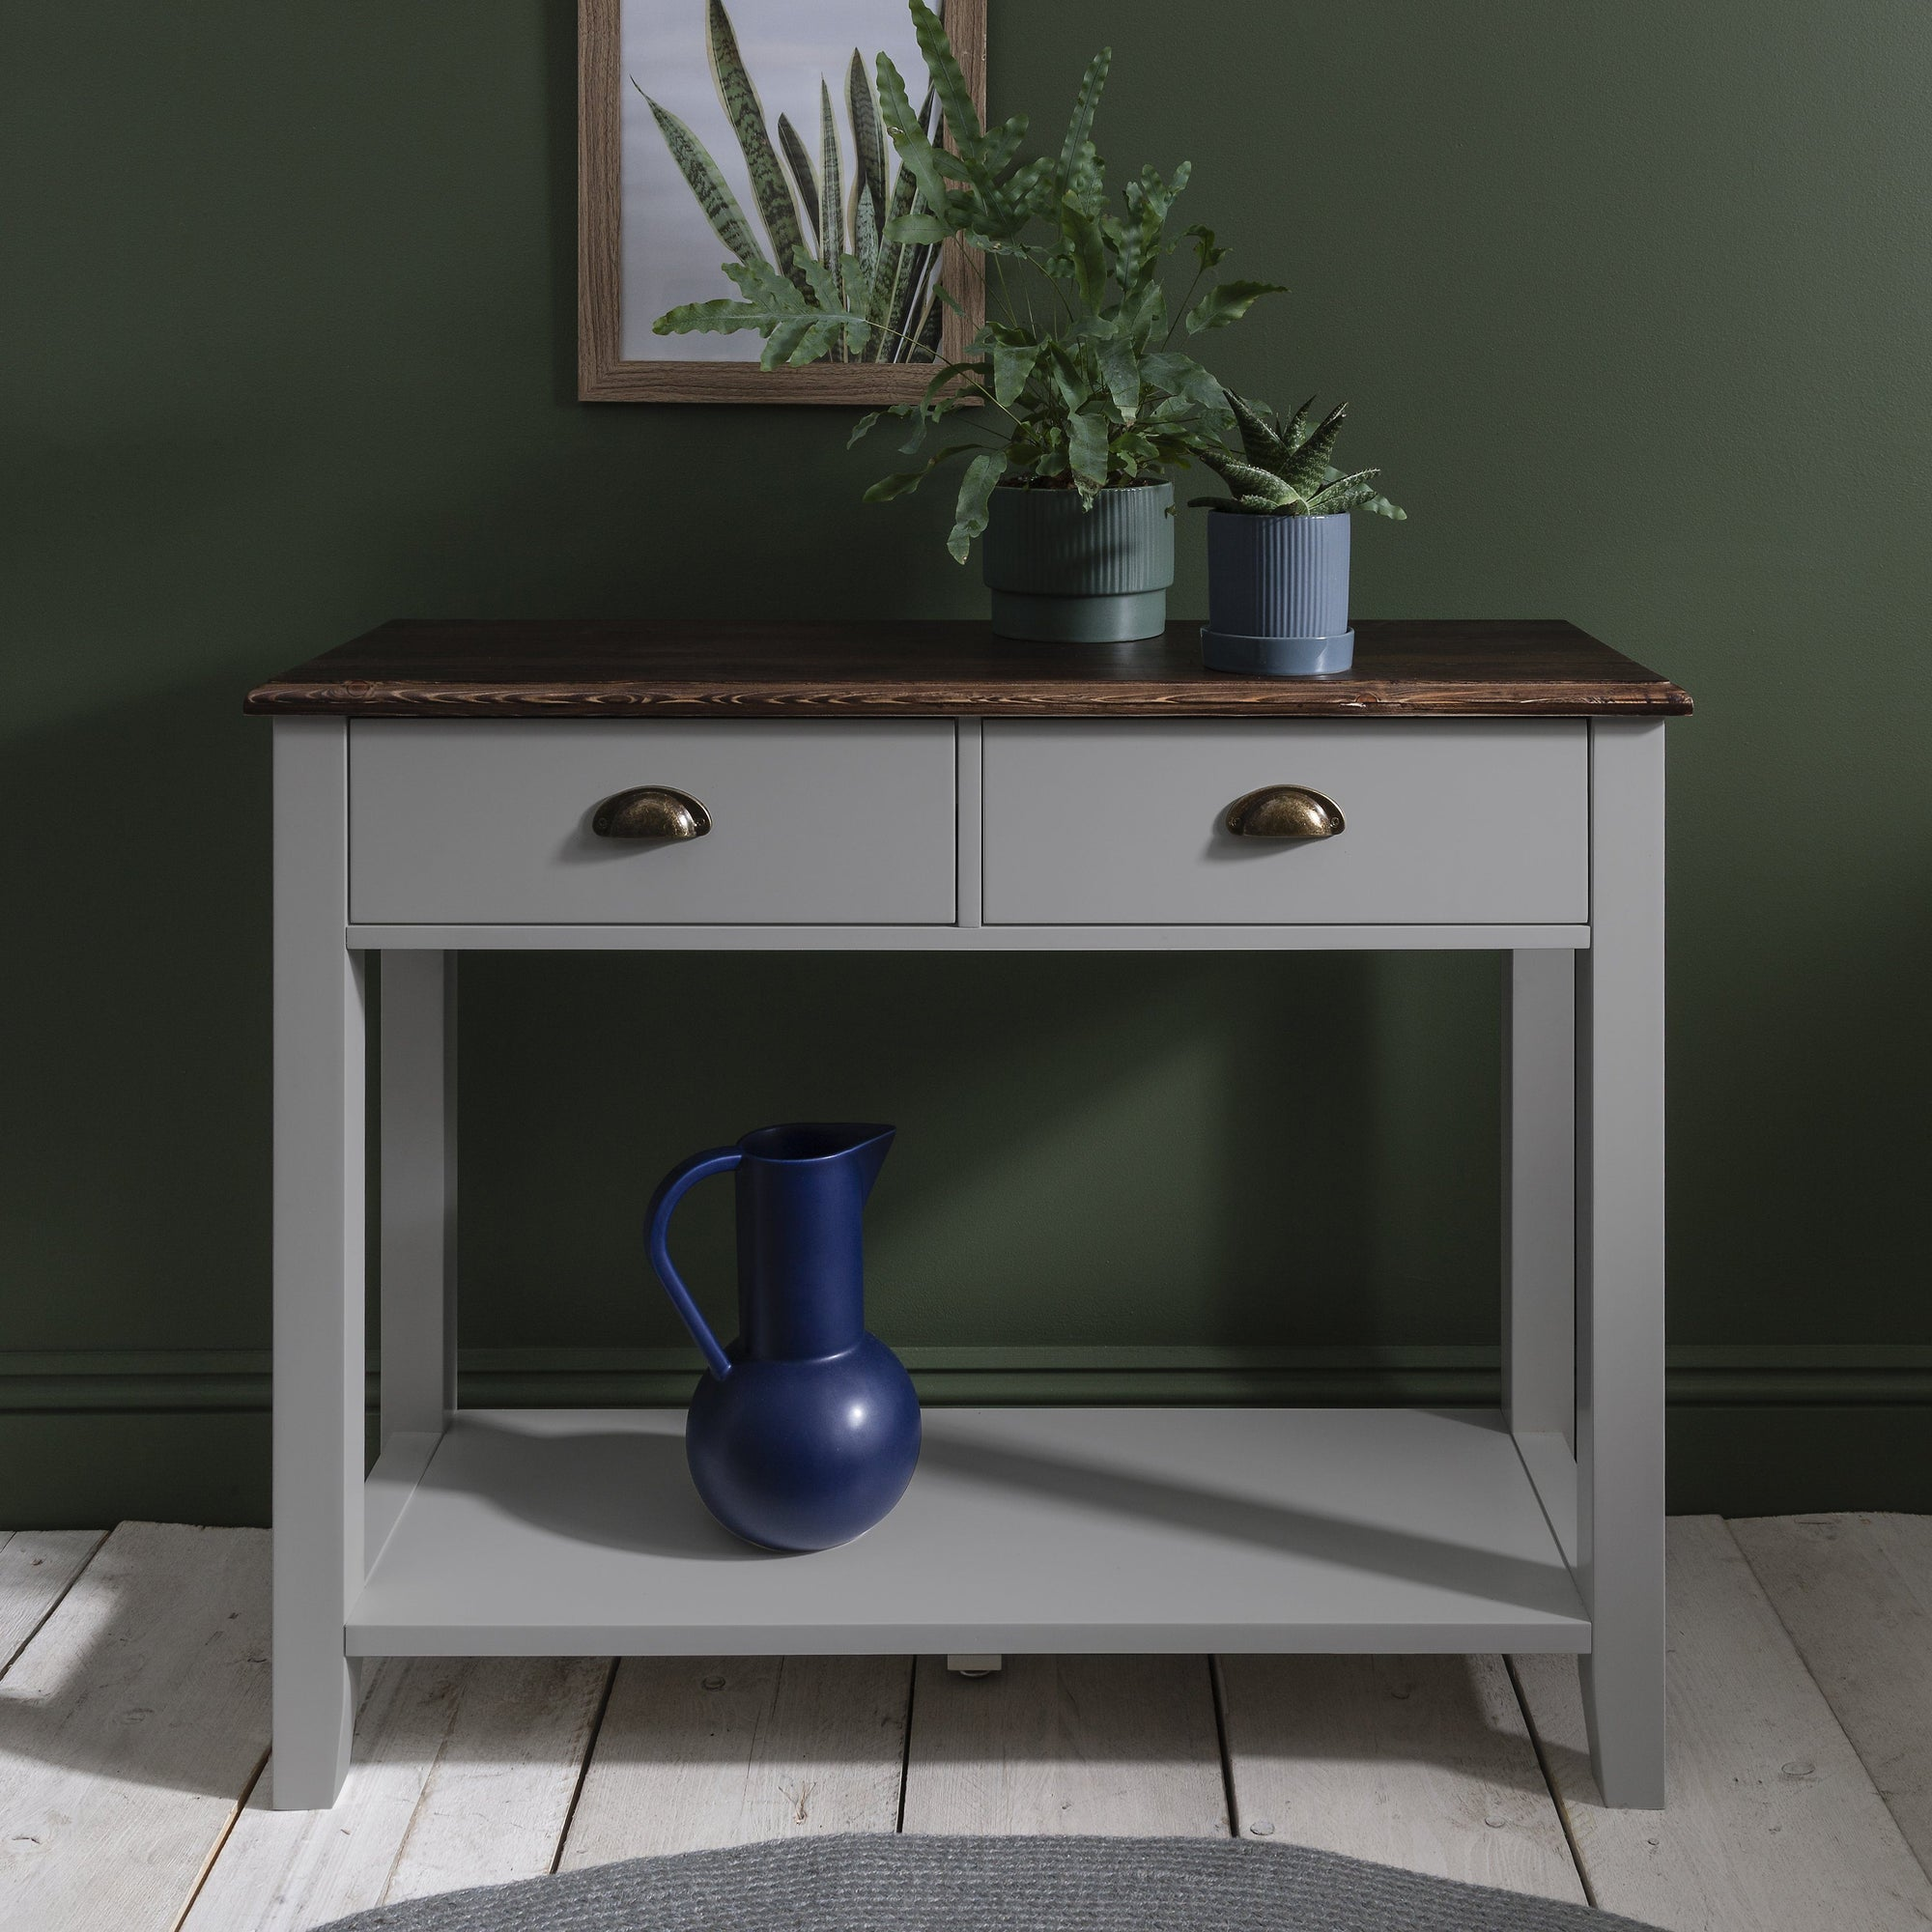 Chatsworth Console Table in Grey - PRE-ORDER - IN STOCK – 19 - 20 SEPTEMBER - Laura James